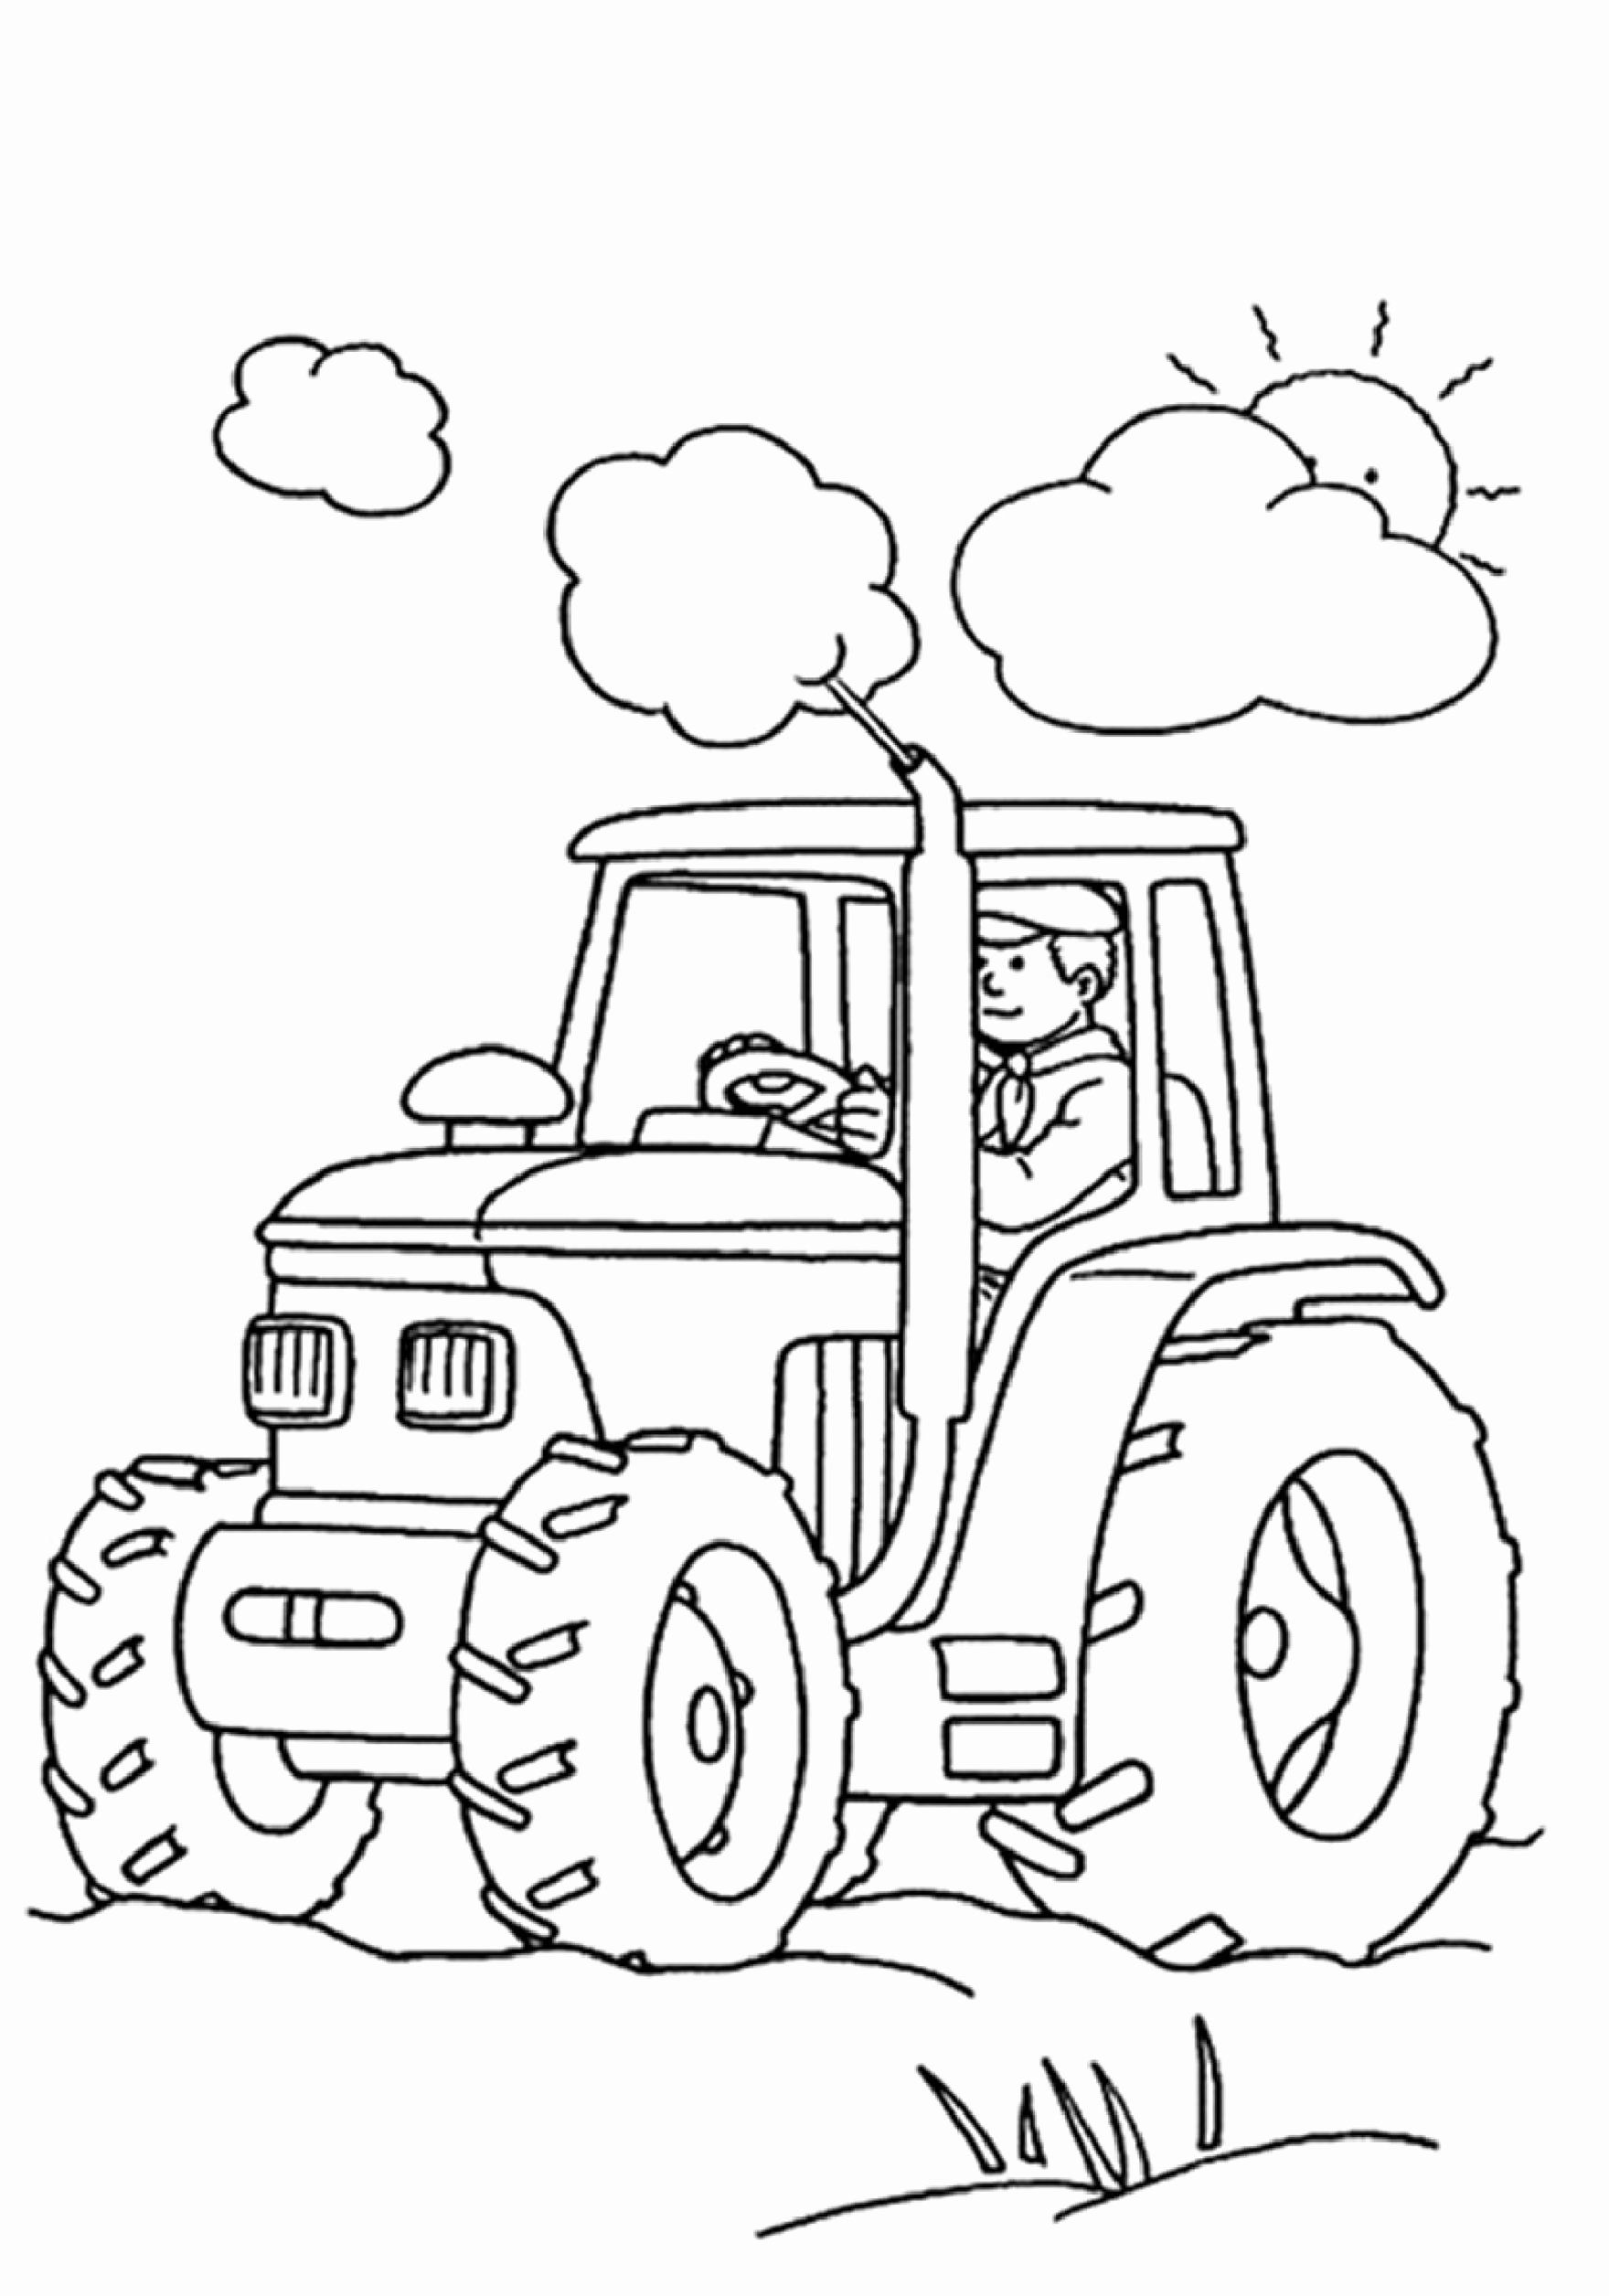 Coloring Activities For Toddlers Pdf Best Of Knowledge Free Printable Coloring Pages Fo In 2020 Tractor Coloring Pages Kindergarten Coloring Pages Truck Coloring Pages